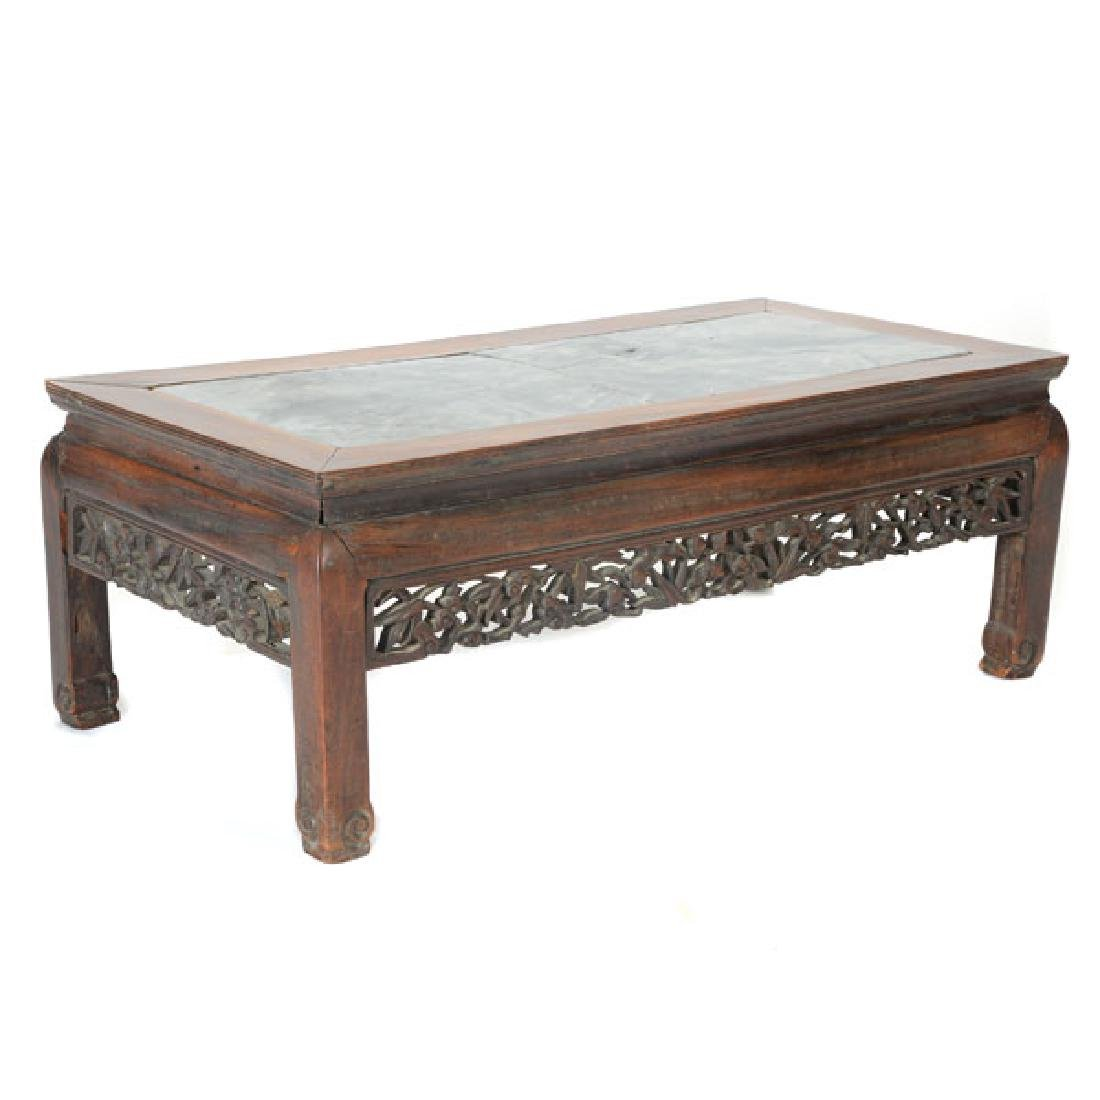 A Rosewood Low Table, Late 19th/Early 20th Century